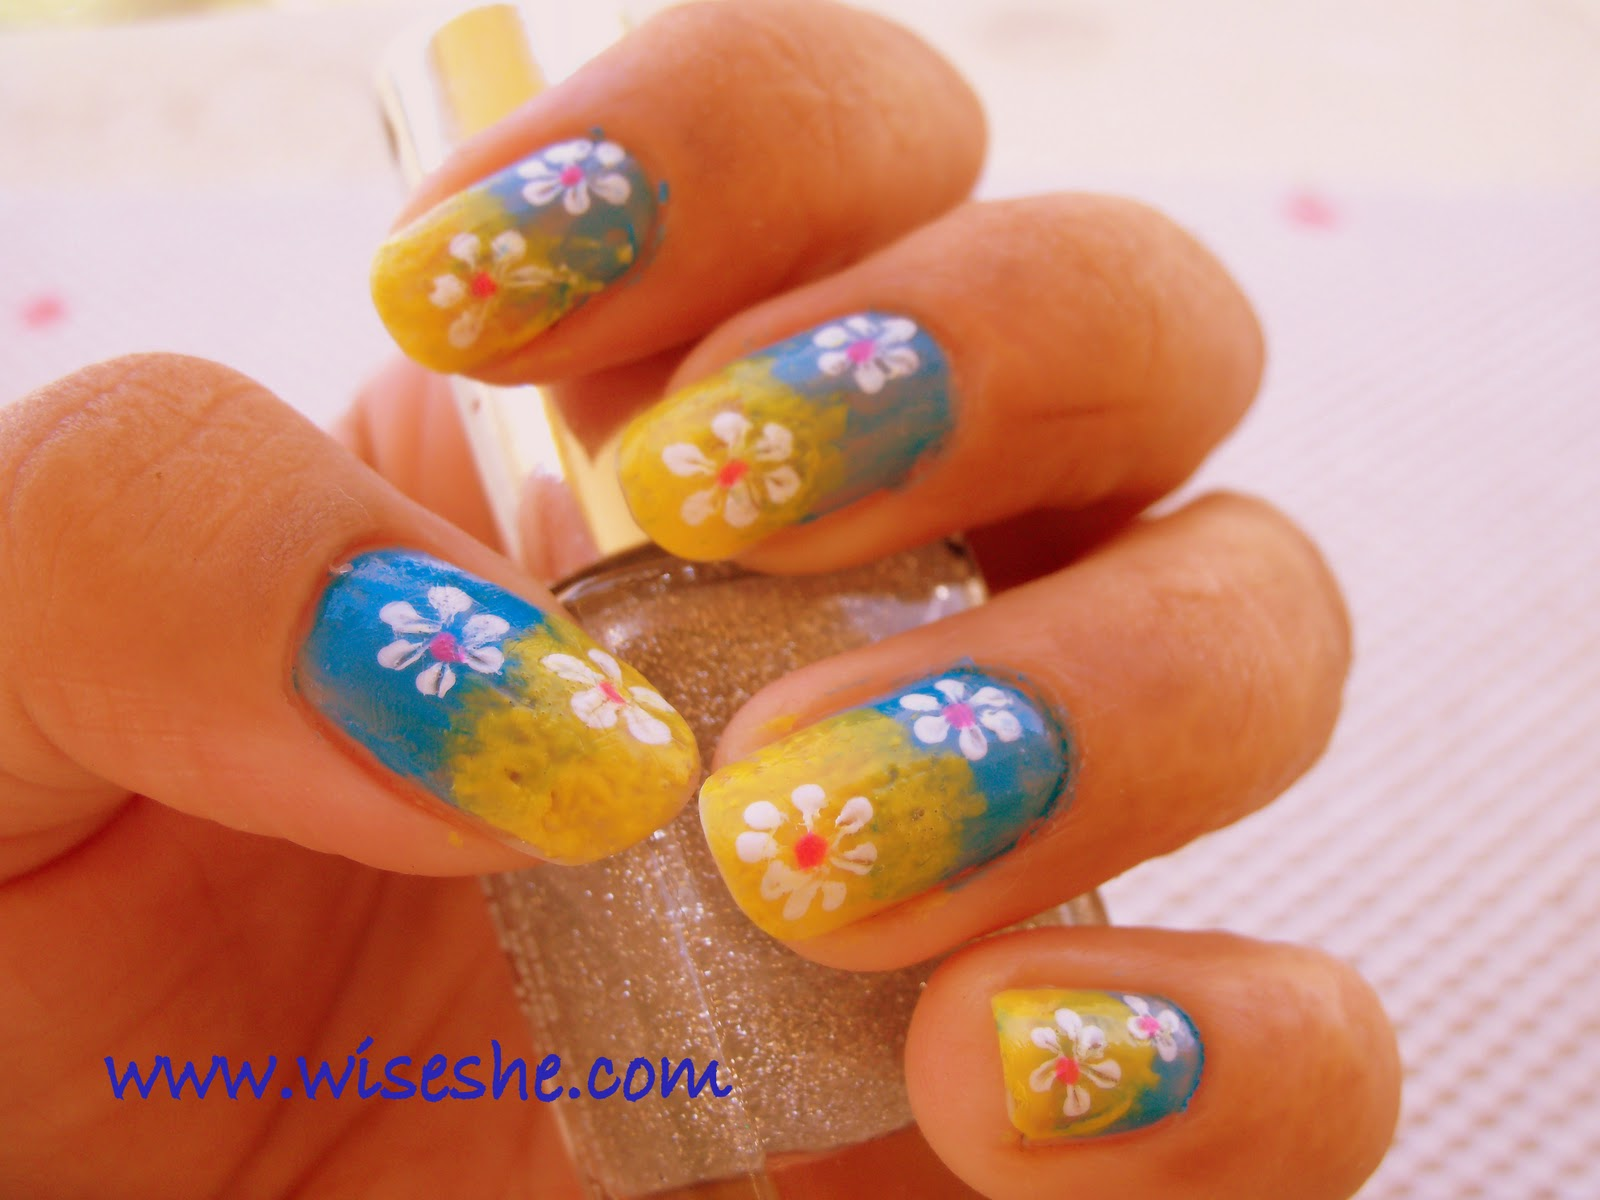 Sponge nail art free hand nail art designs in yellow and blue prinsesfo Choice Image